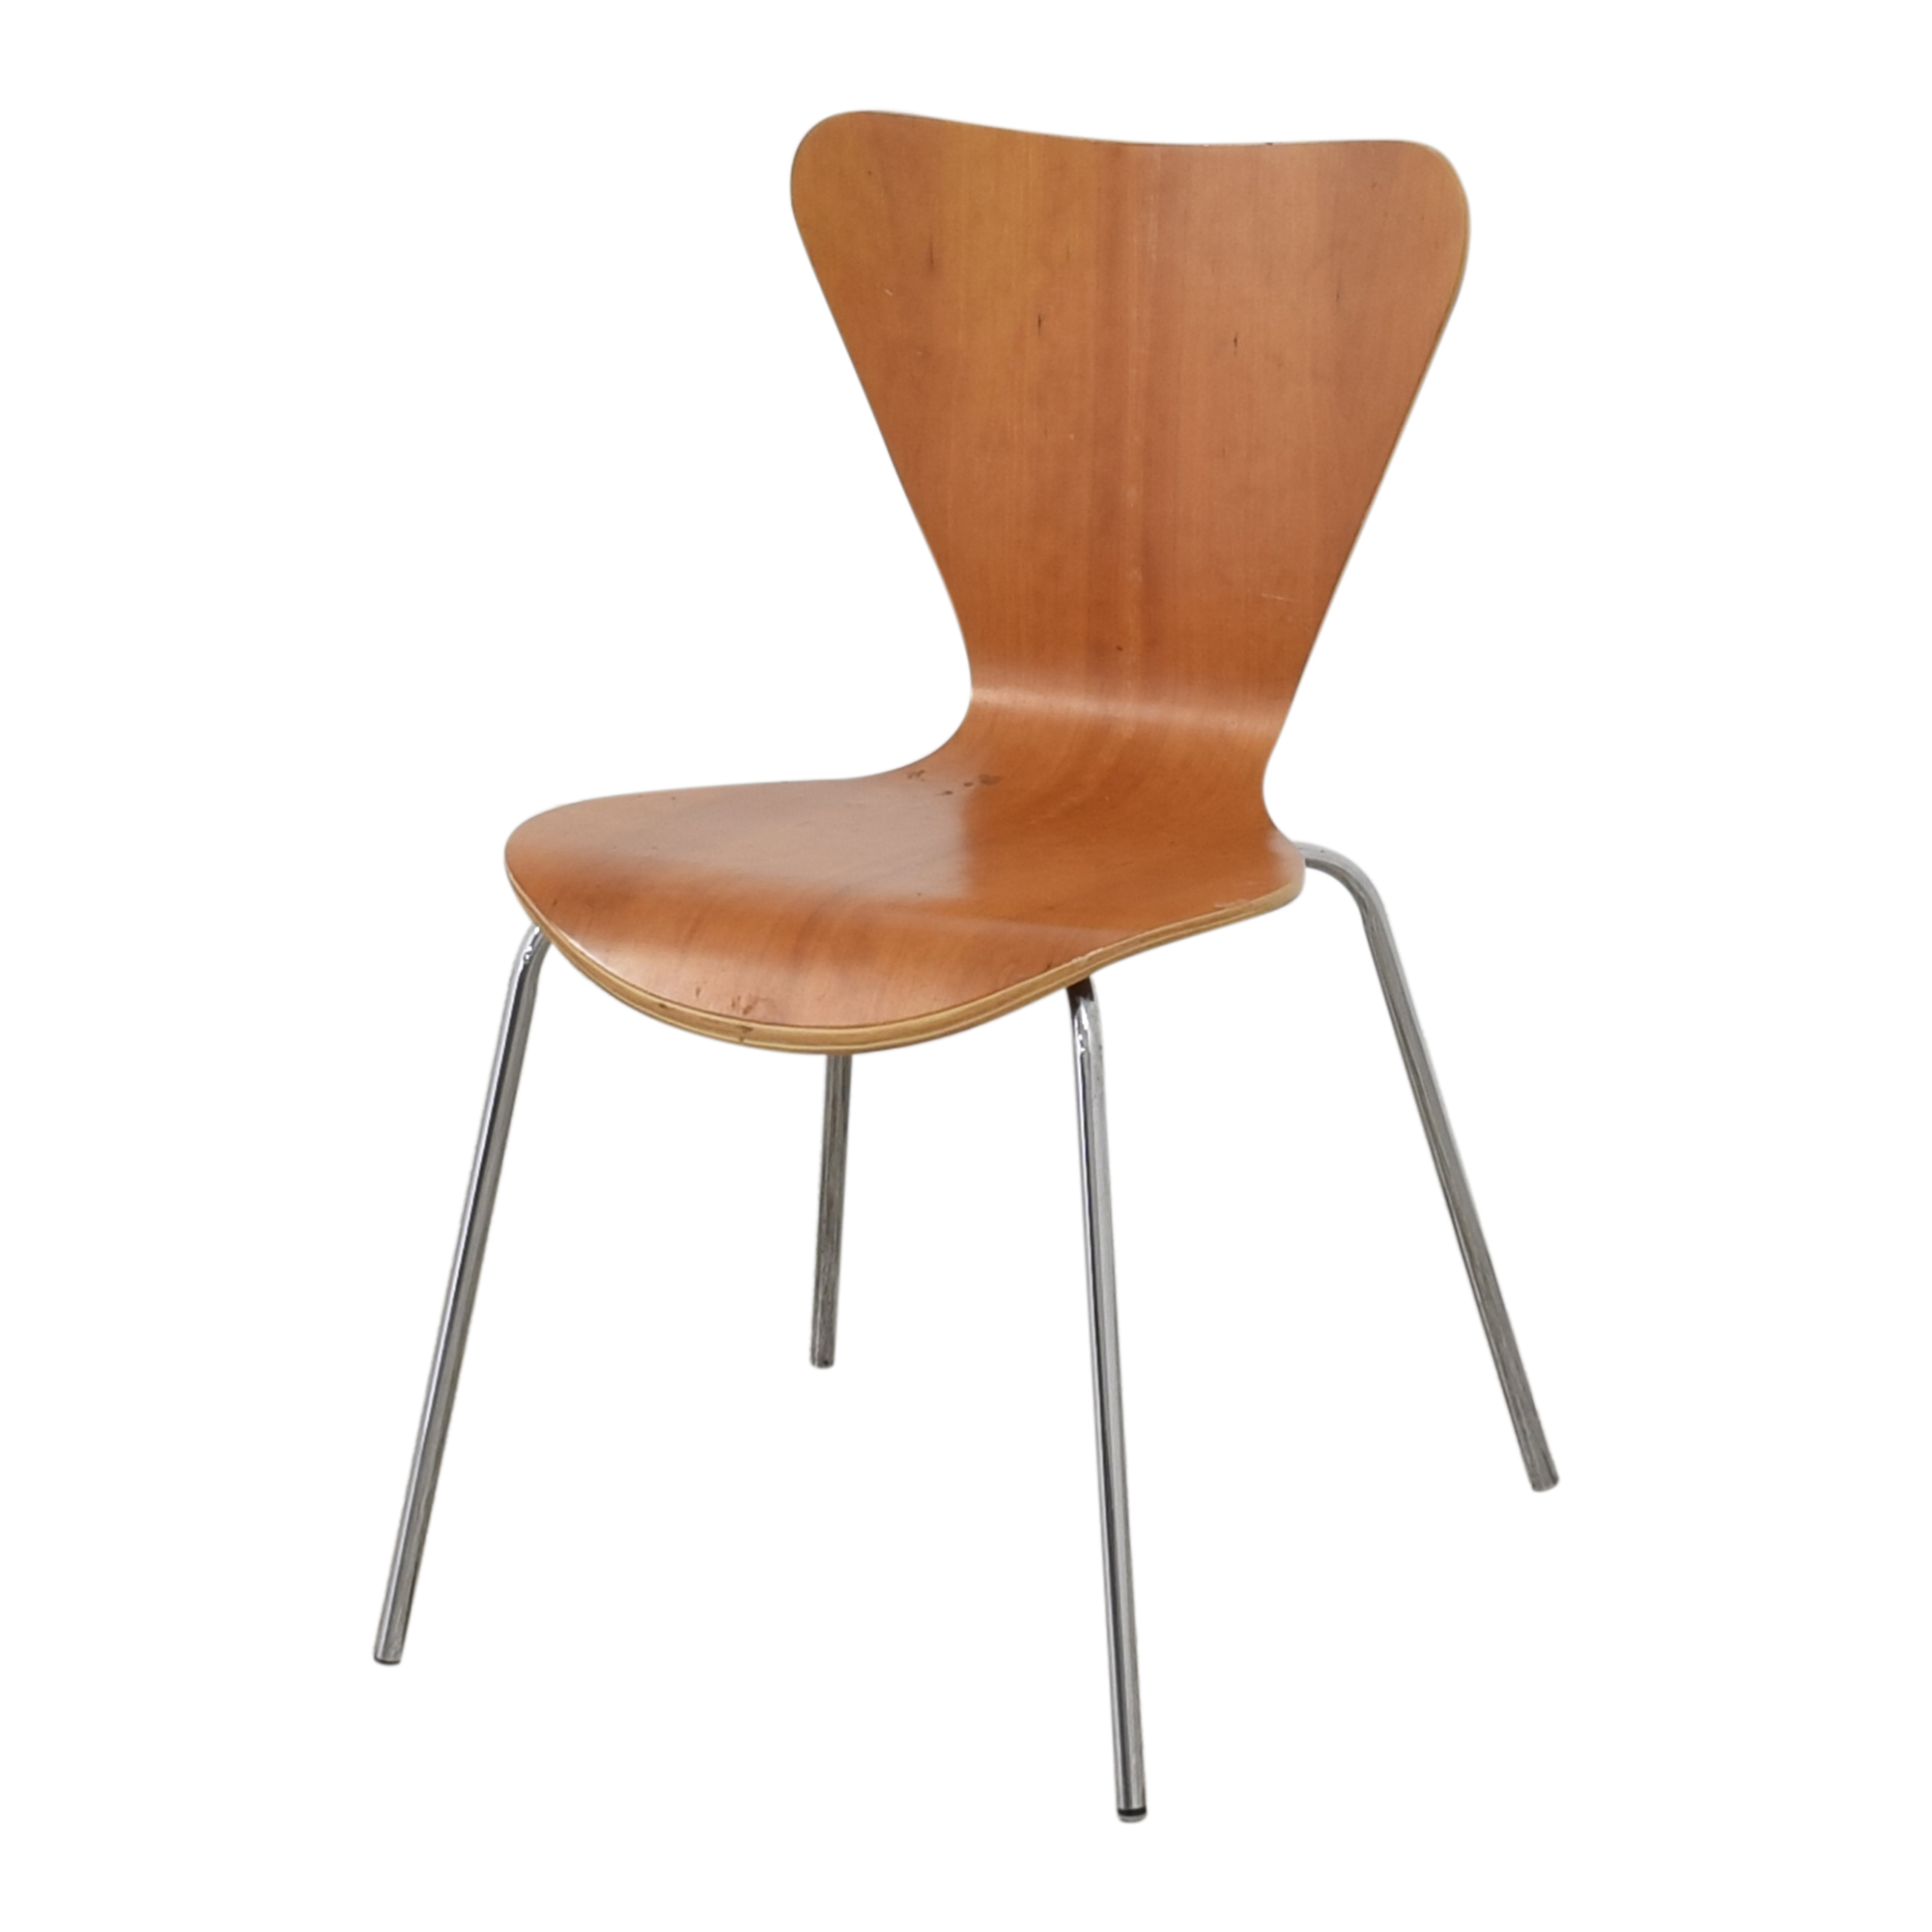 shop Room & Board Room & Board Jake Dining Chairs online